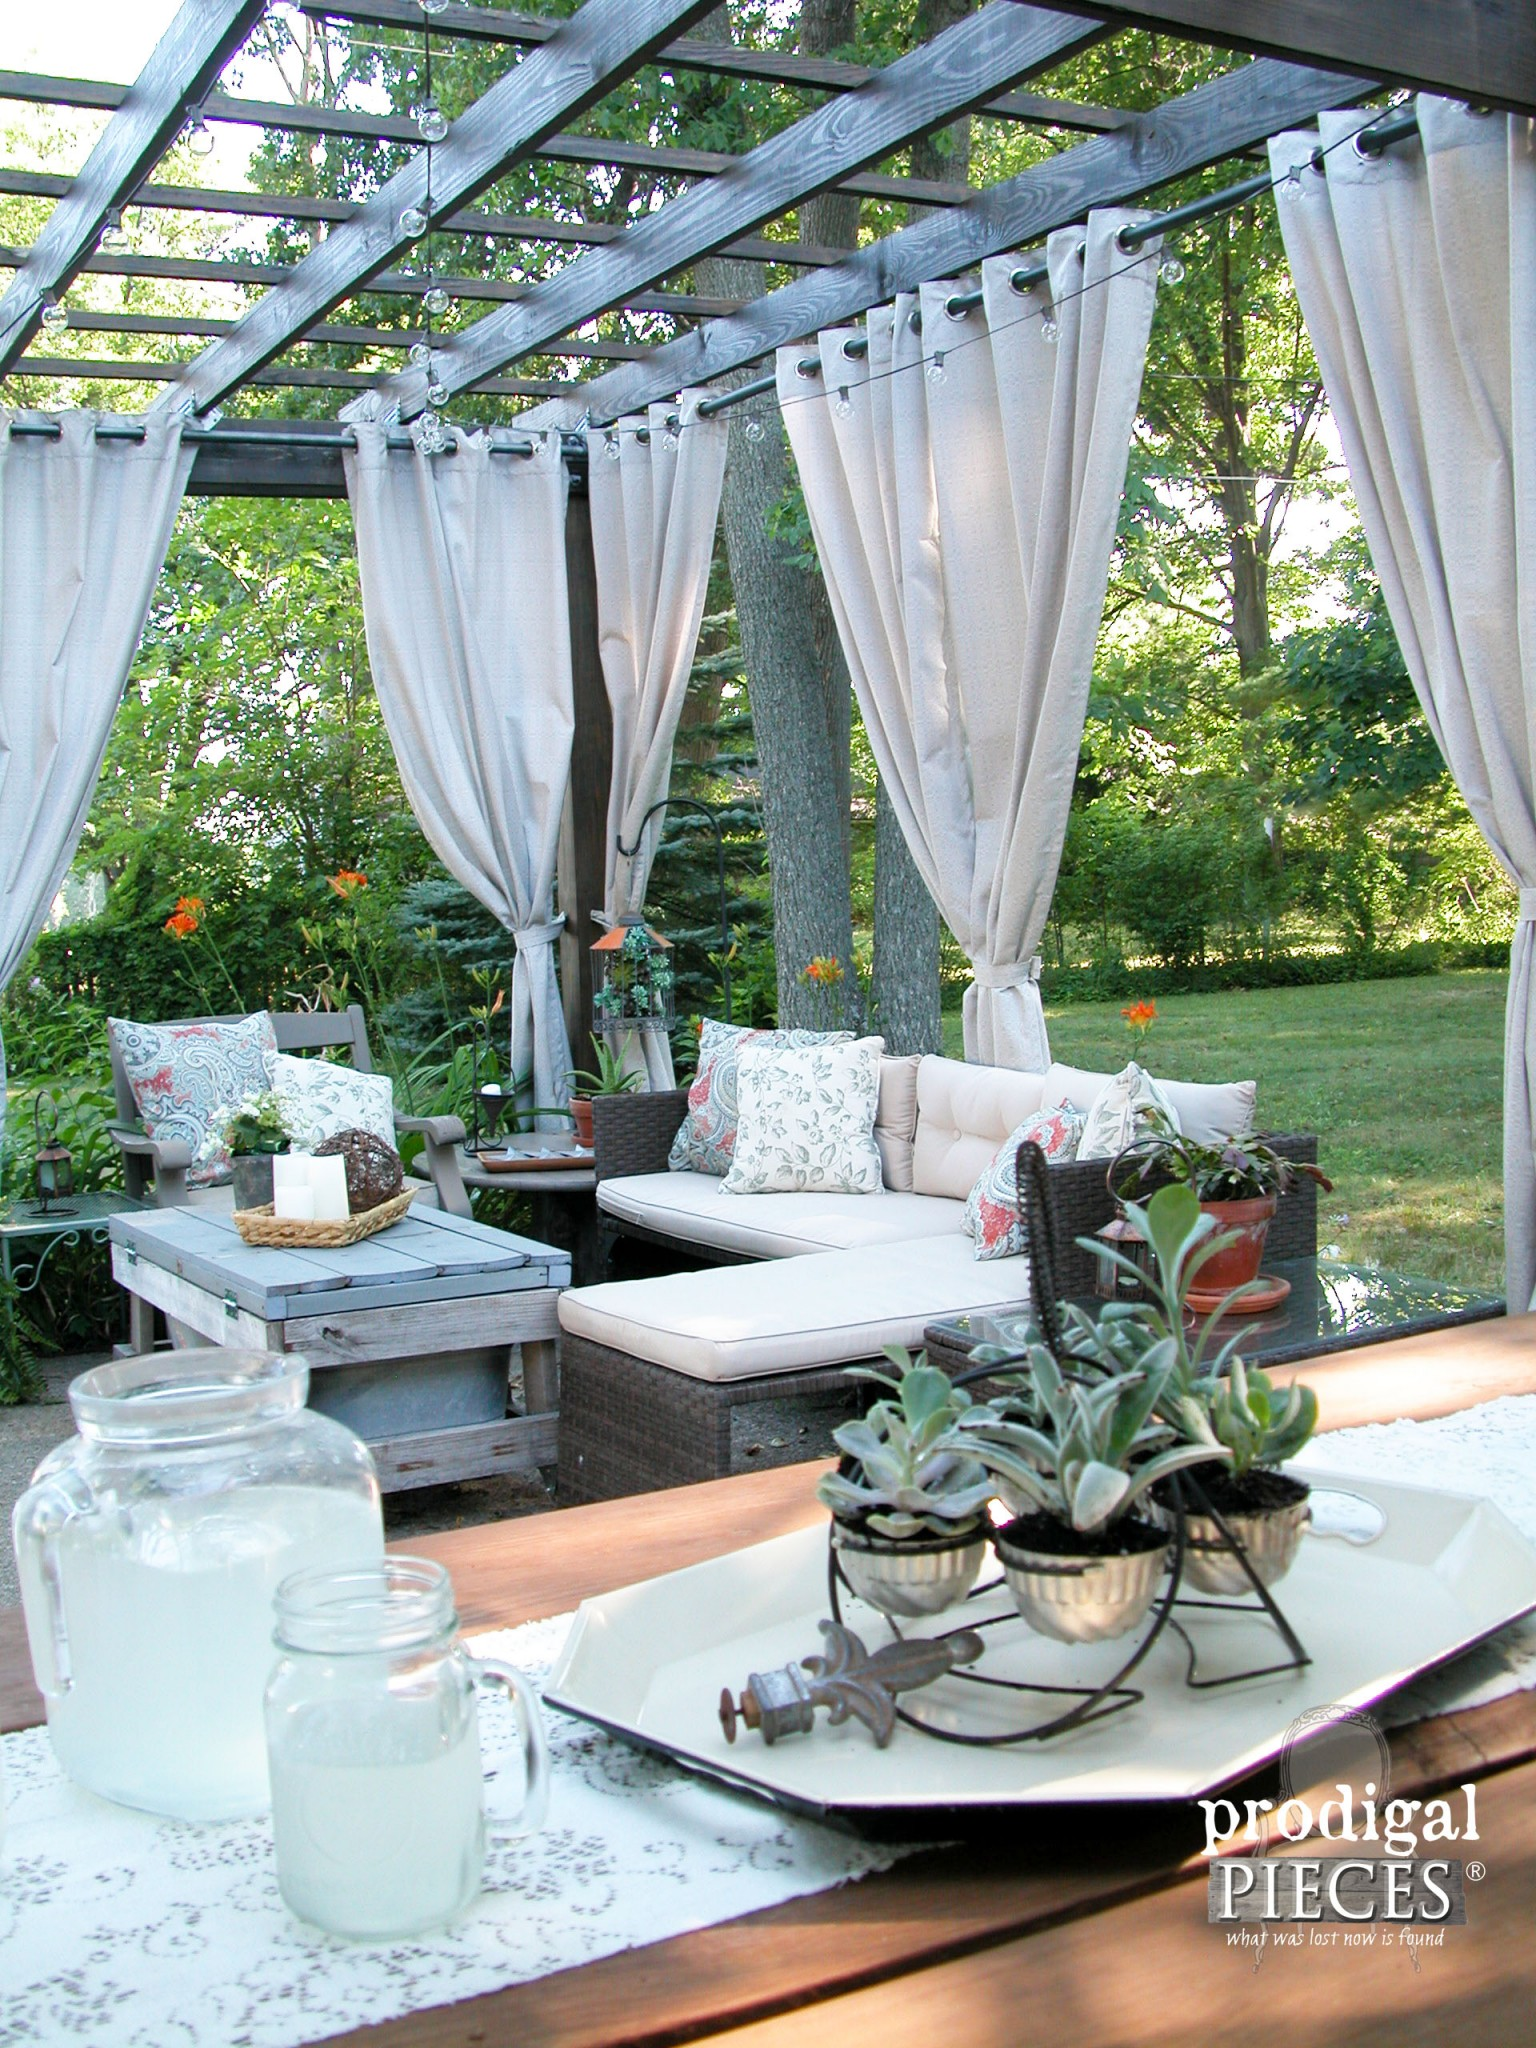 DIY Patio Design with Pergola, Curtains, and Repurposed Furniture by Prodigal Pieces | www.prodigalpieces.com